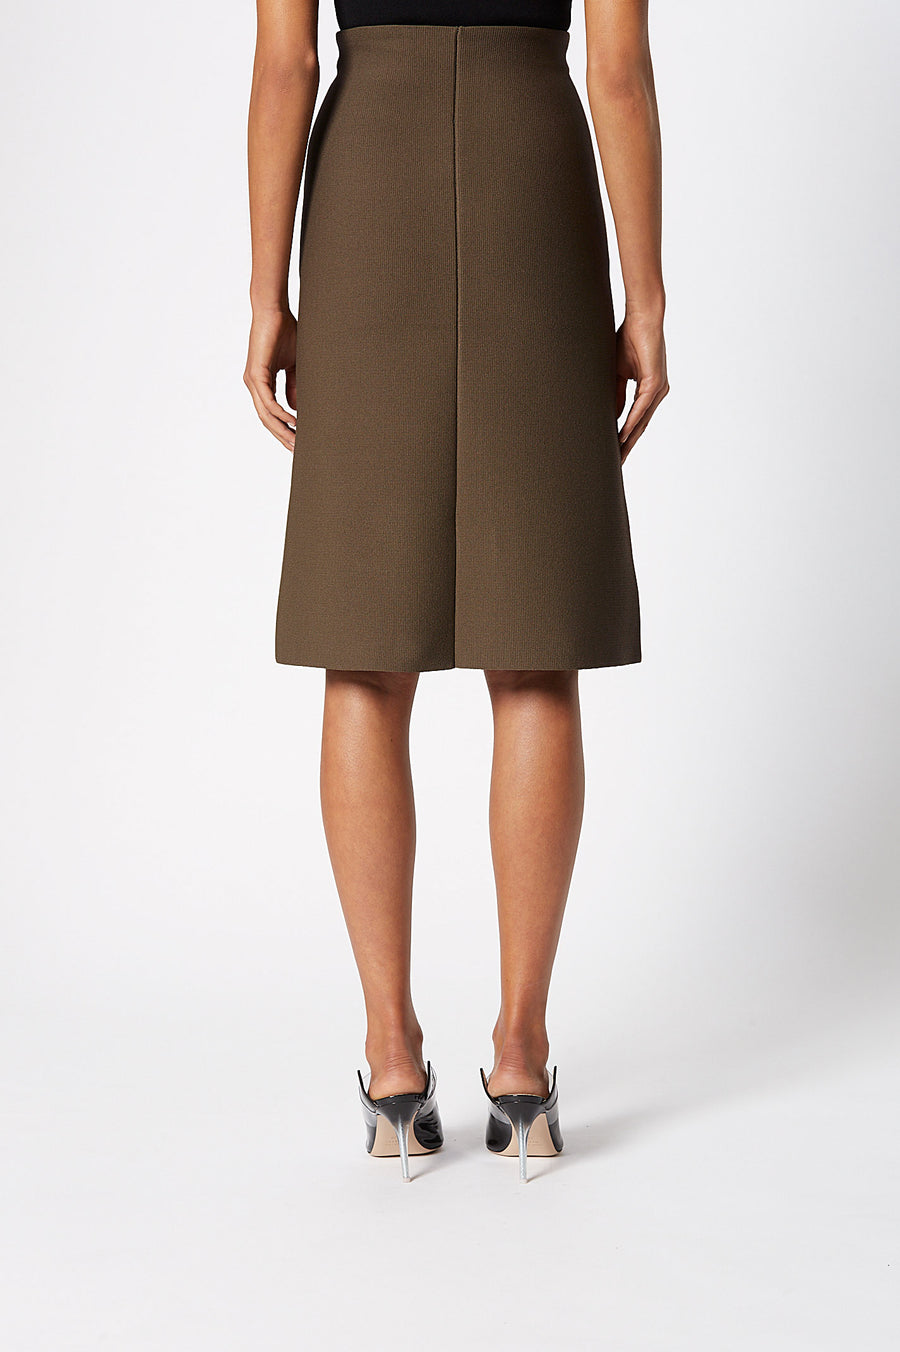 Crepe Knit A-Line Skirt, fitted at the waist, A-line body, sits below knee, Color Cafe